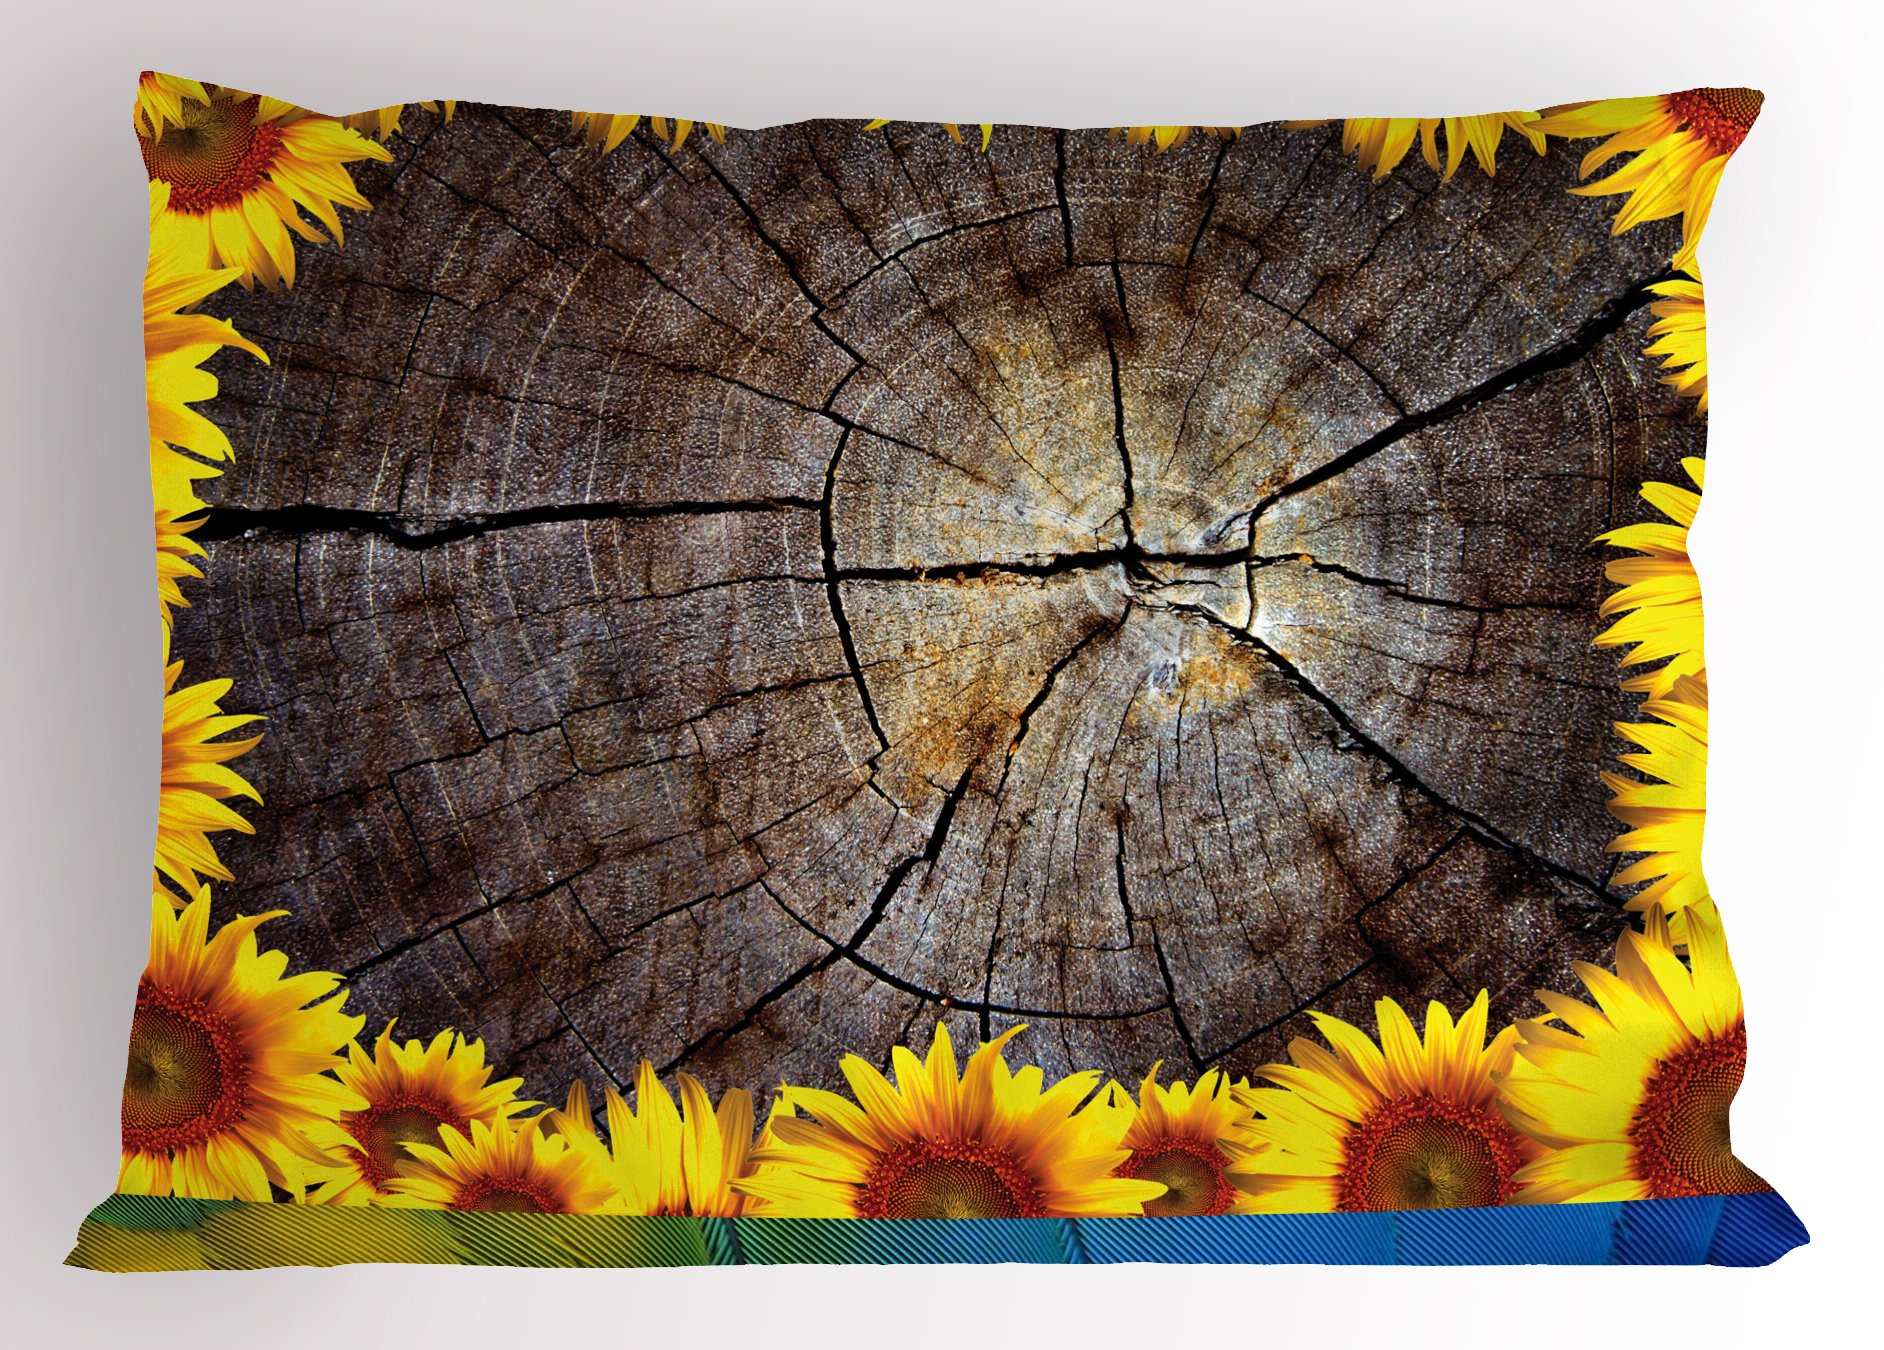 Lunarable Sunflower Pillow Sham, Cut Section Wood Stump with Sunflowers Seeds Tree Trunk Rustic Ornamental, Decorative Standard King Size Printed Pillowcase, 36 X 20 inches, Seal Brown Yellow